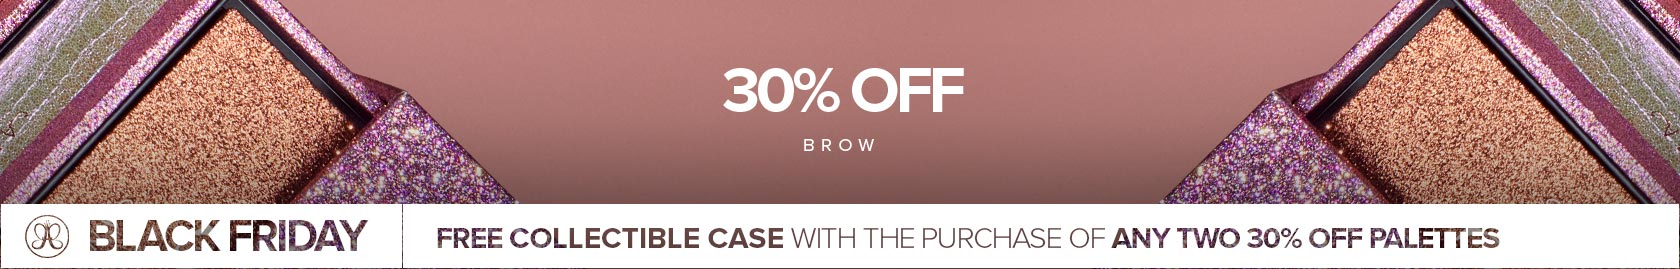 30% off Brows